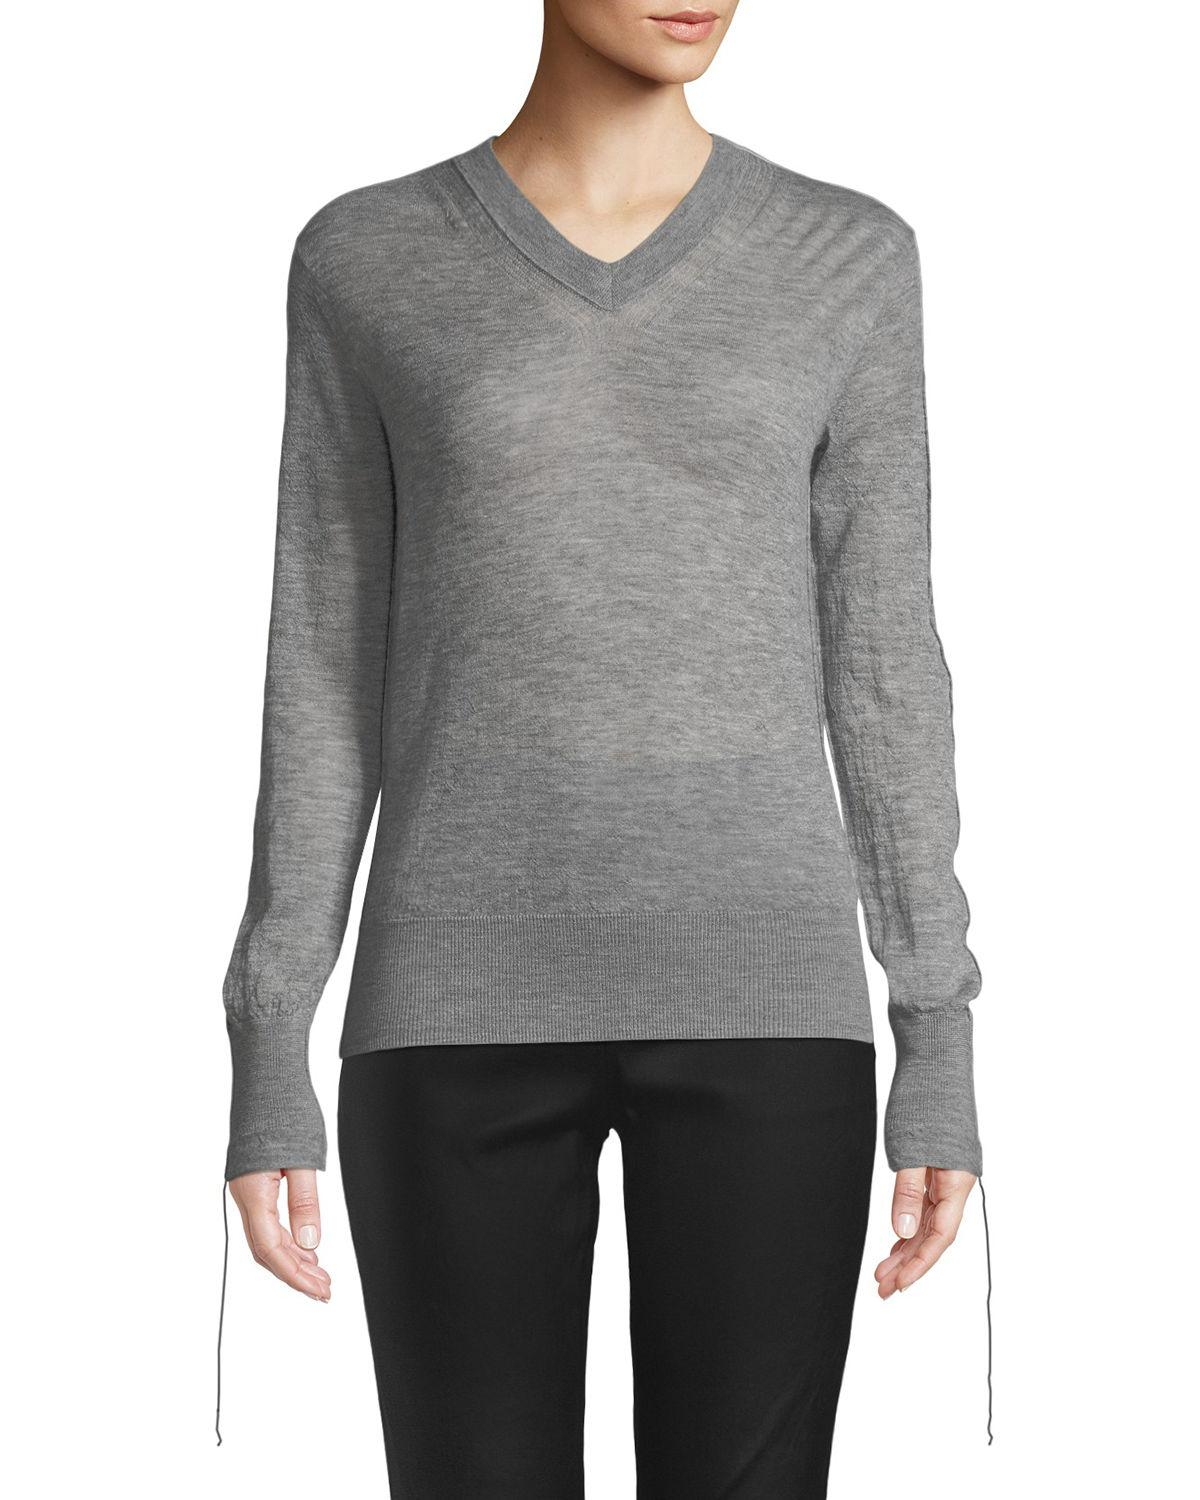 1334e52ec90 Lyst - Helmut Lang Tie-cuff Sheer Cashmere V-neck Sweater in Black ...